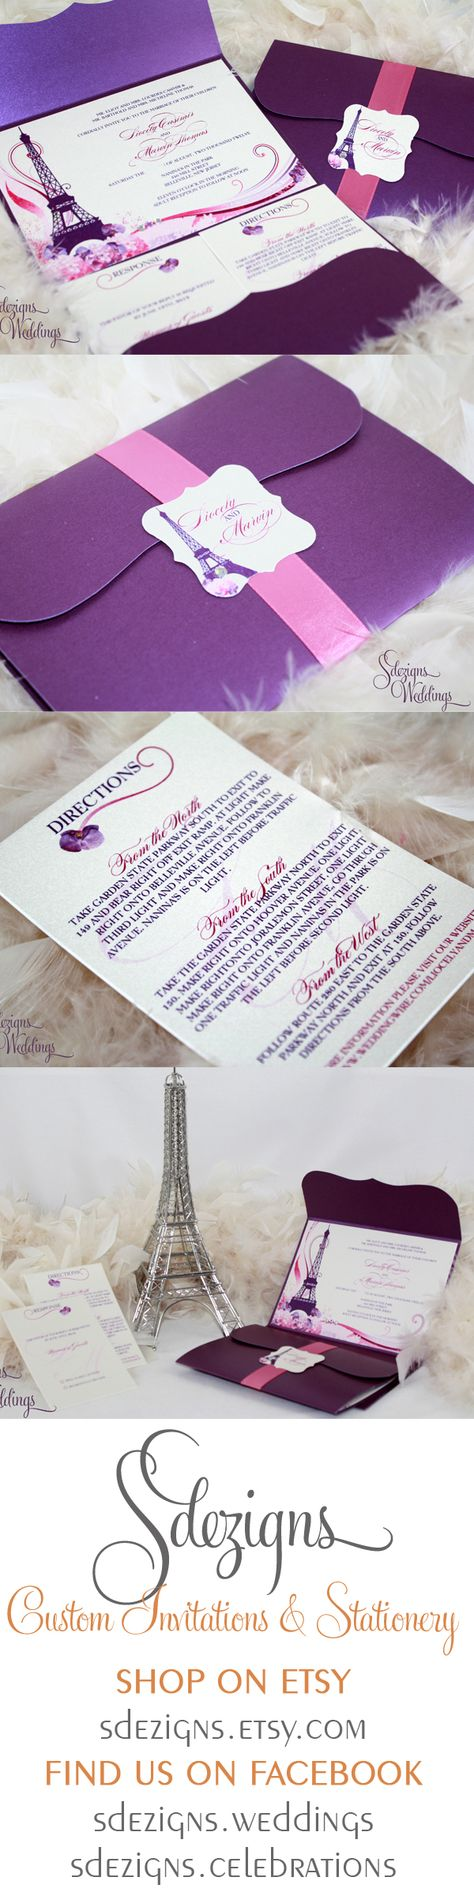 52 Best Examples - cards images | Wedding invitations, Invitations, Wedding